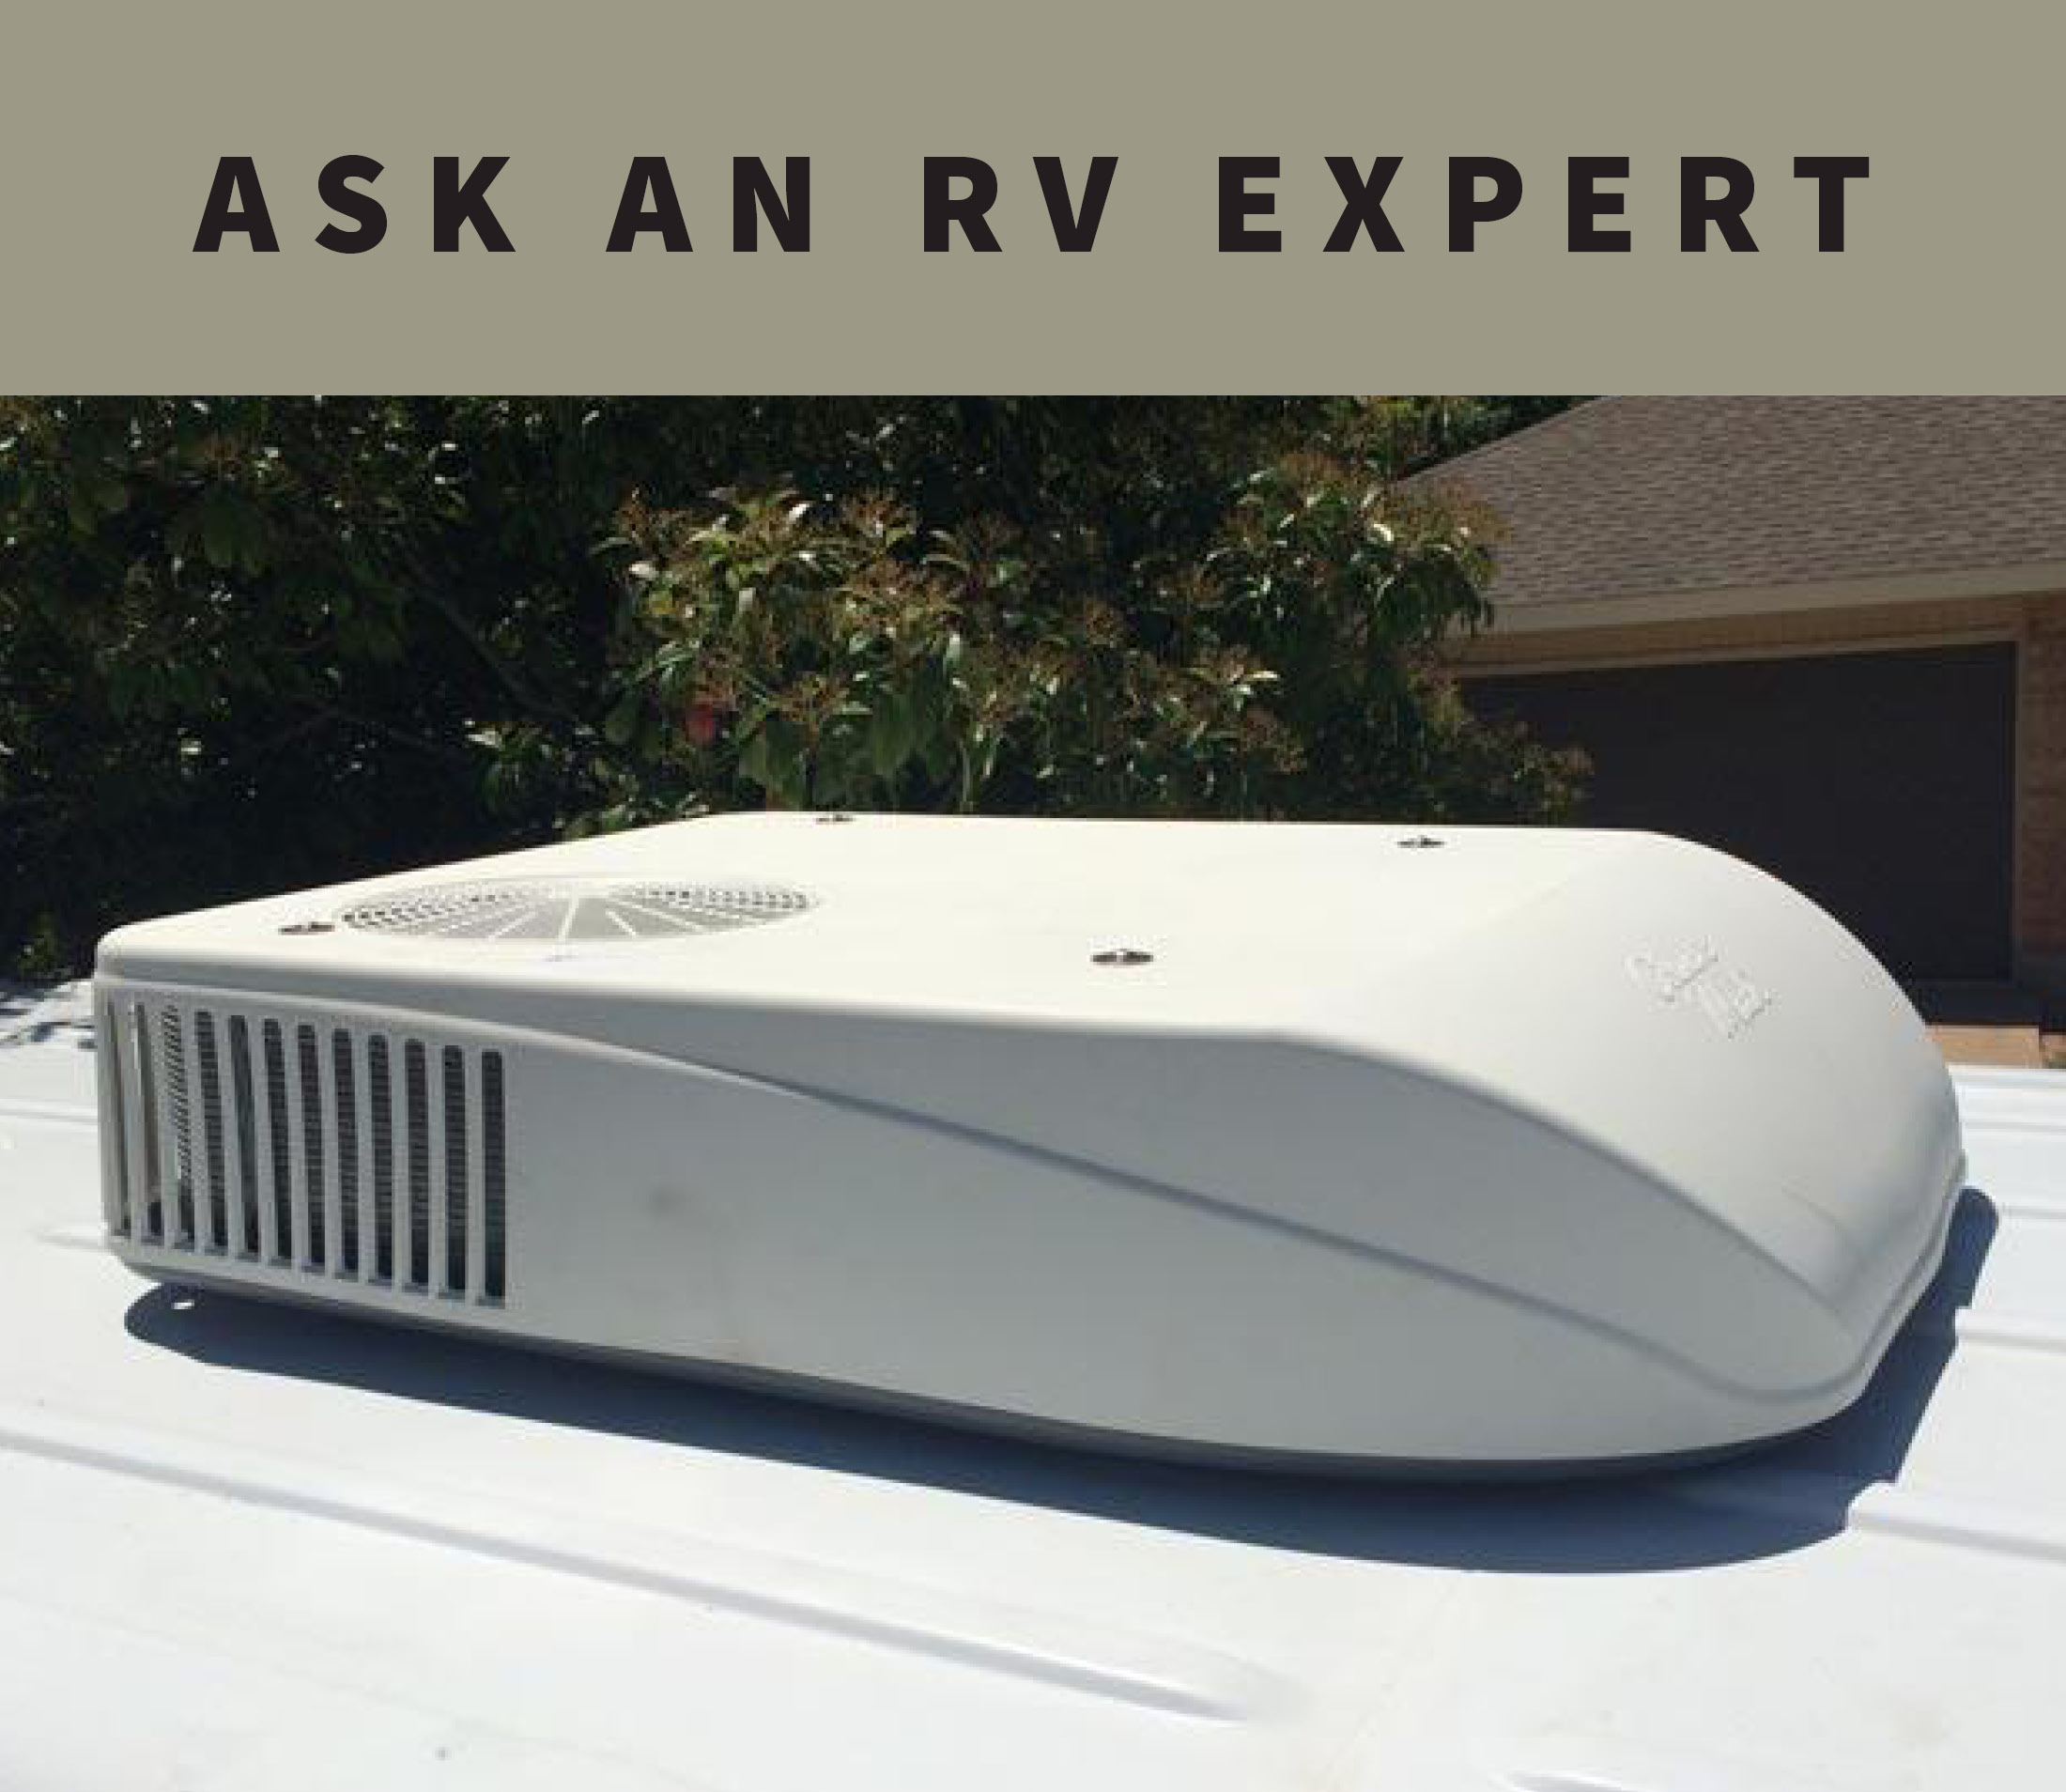 What to Do About A/C Condensation | RV Repair Club Q&A National Surfside Motorhome Wiring Diagram on